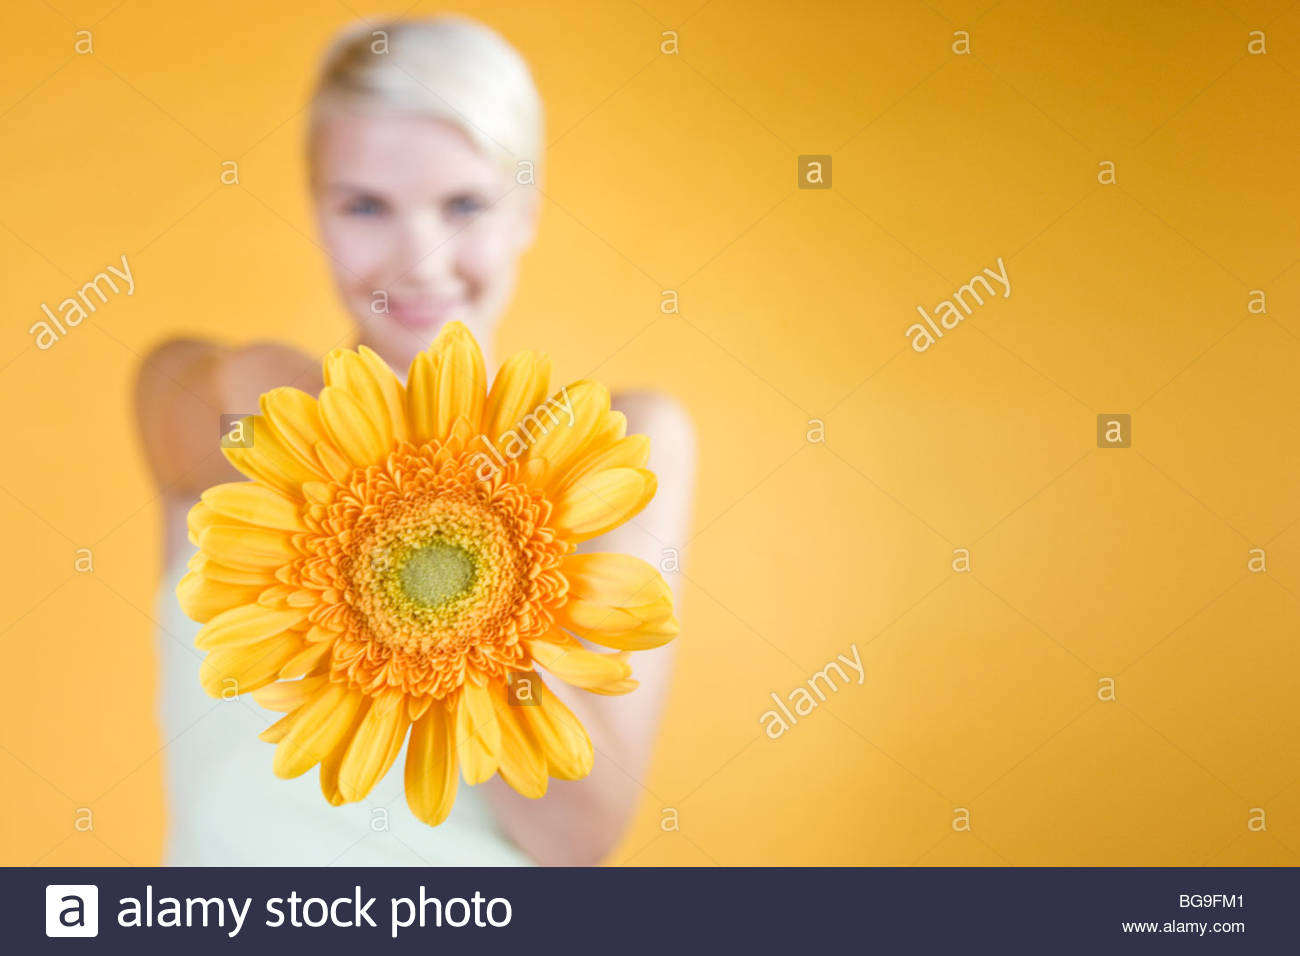 A Young Woman Holding An Orange Flower - Stock Image